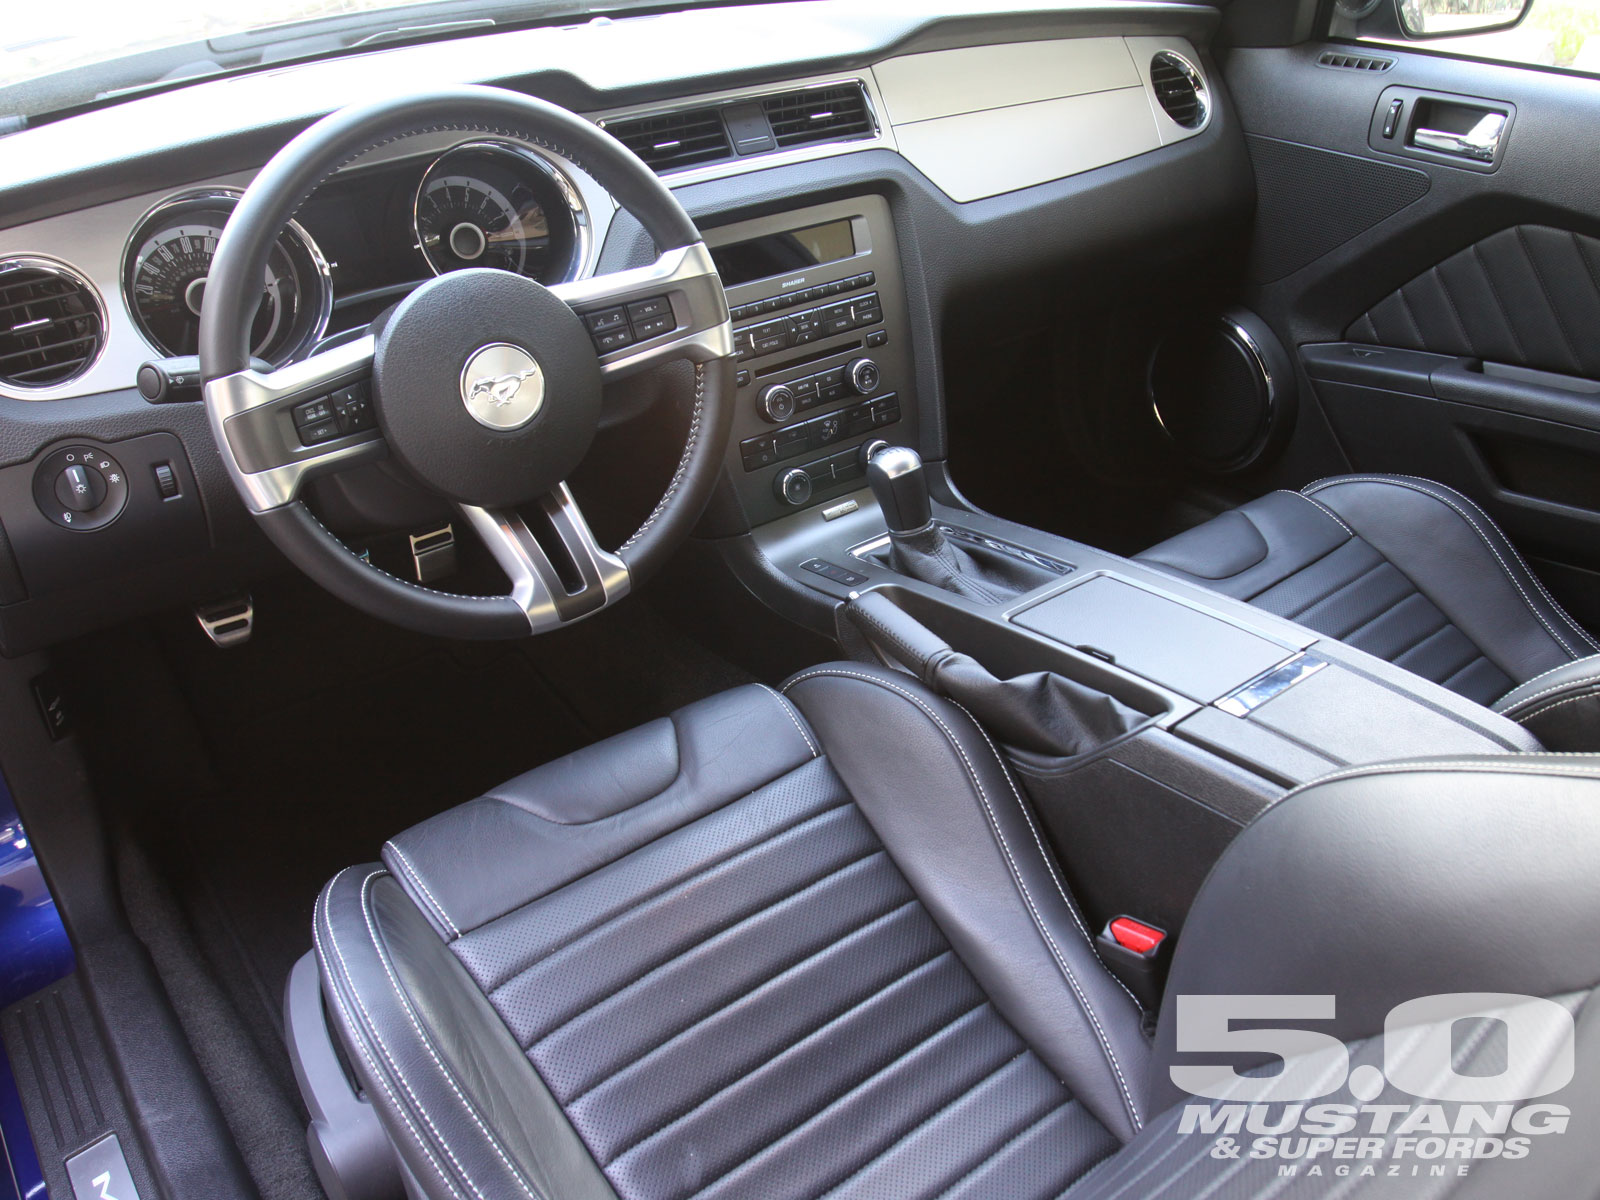 2013 ford mustang gt interior 7sm5ezwm engine information. Black Bedroom Furniture Sets. Home Design Ideas